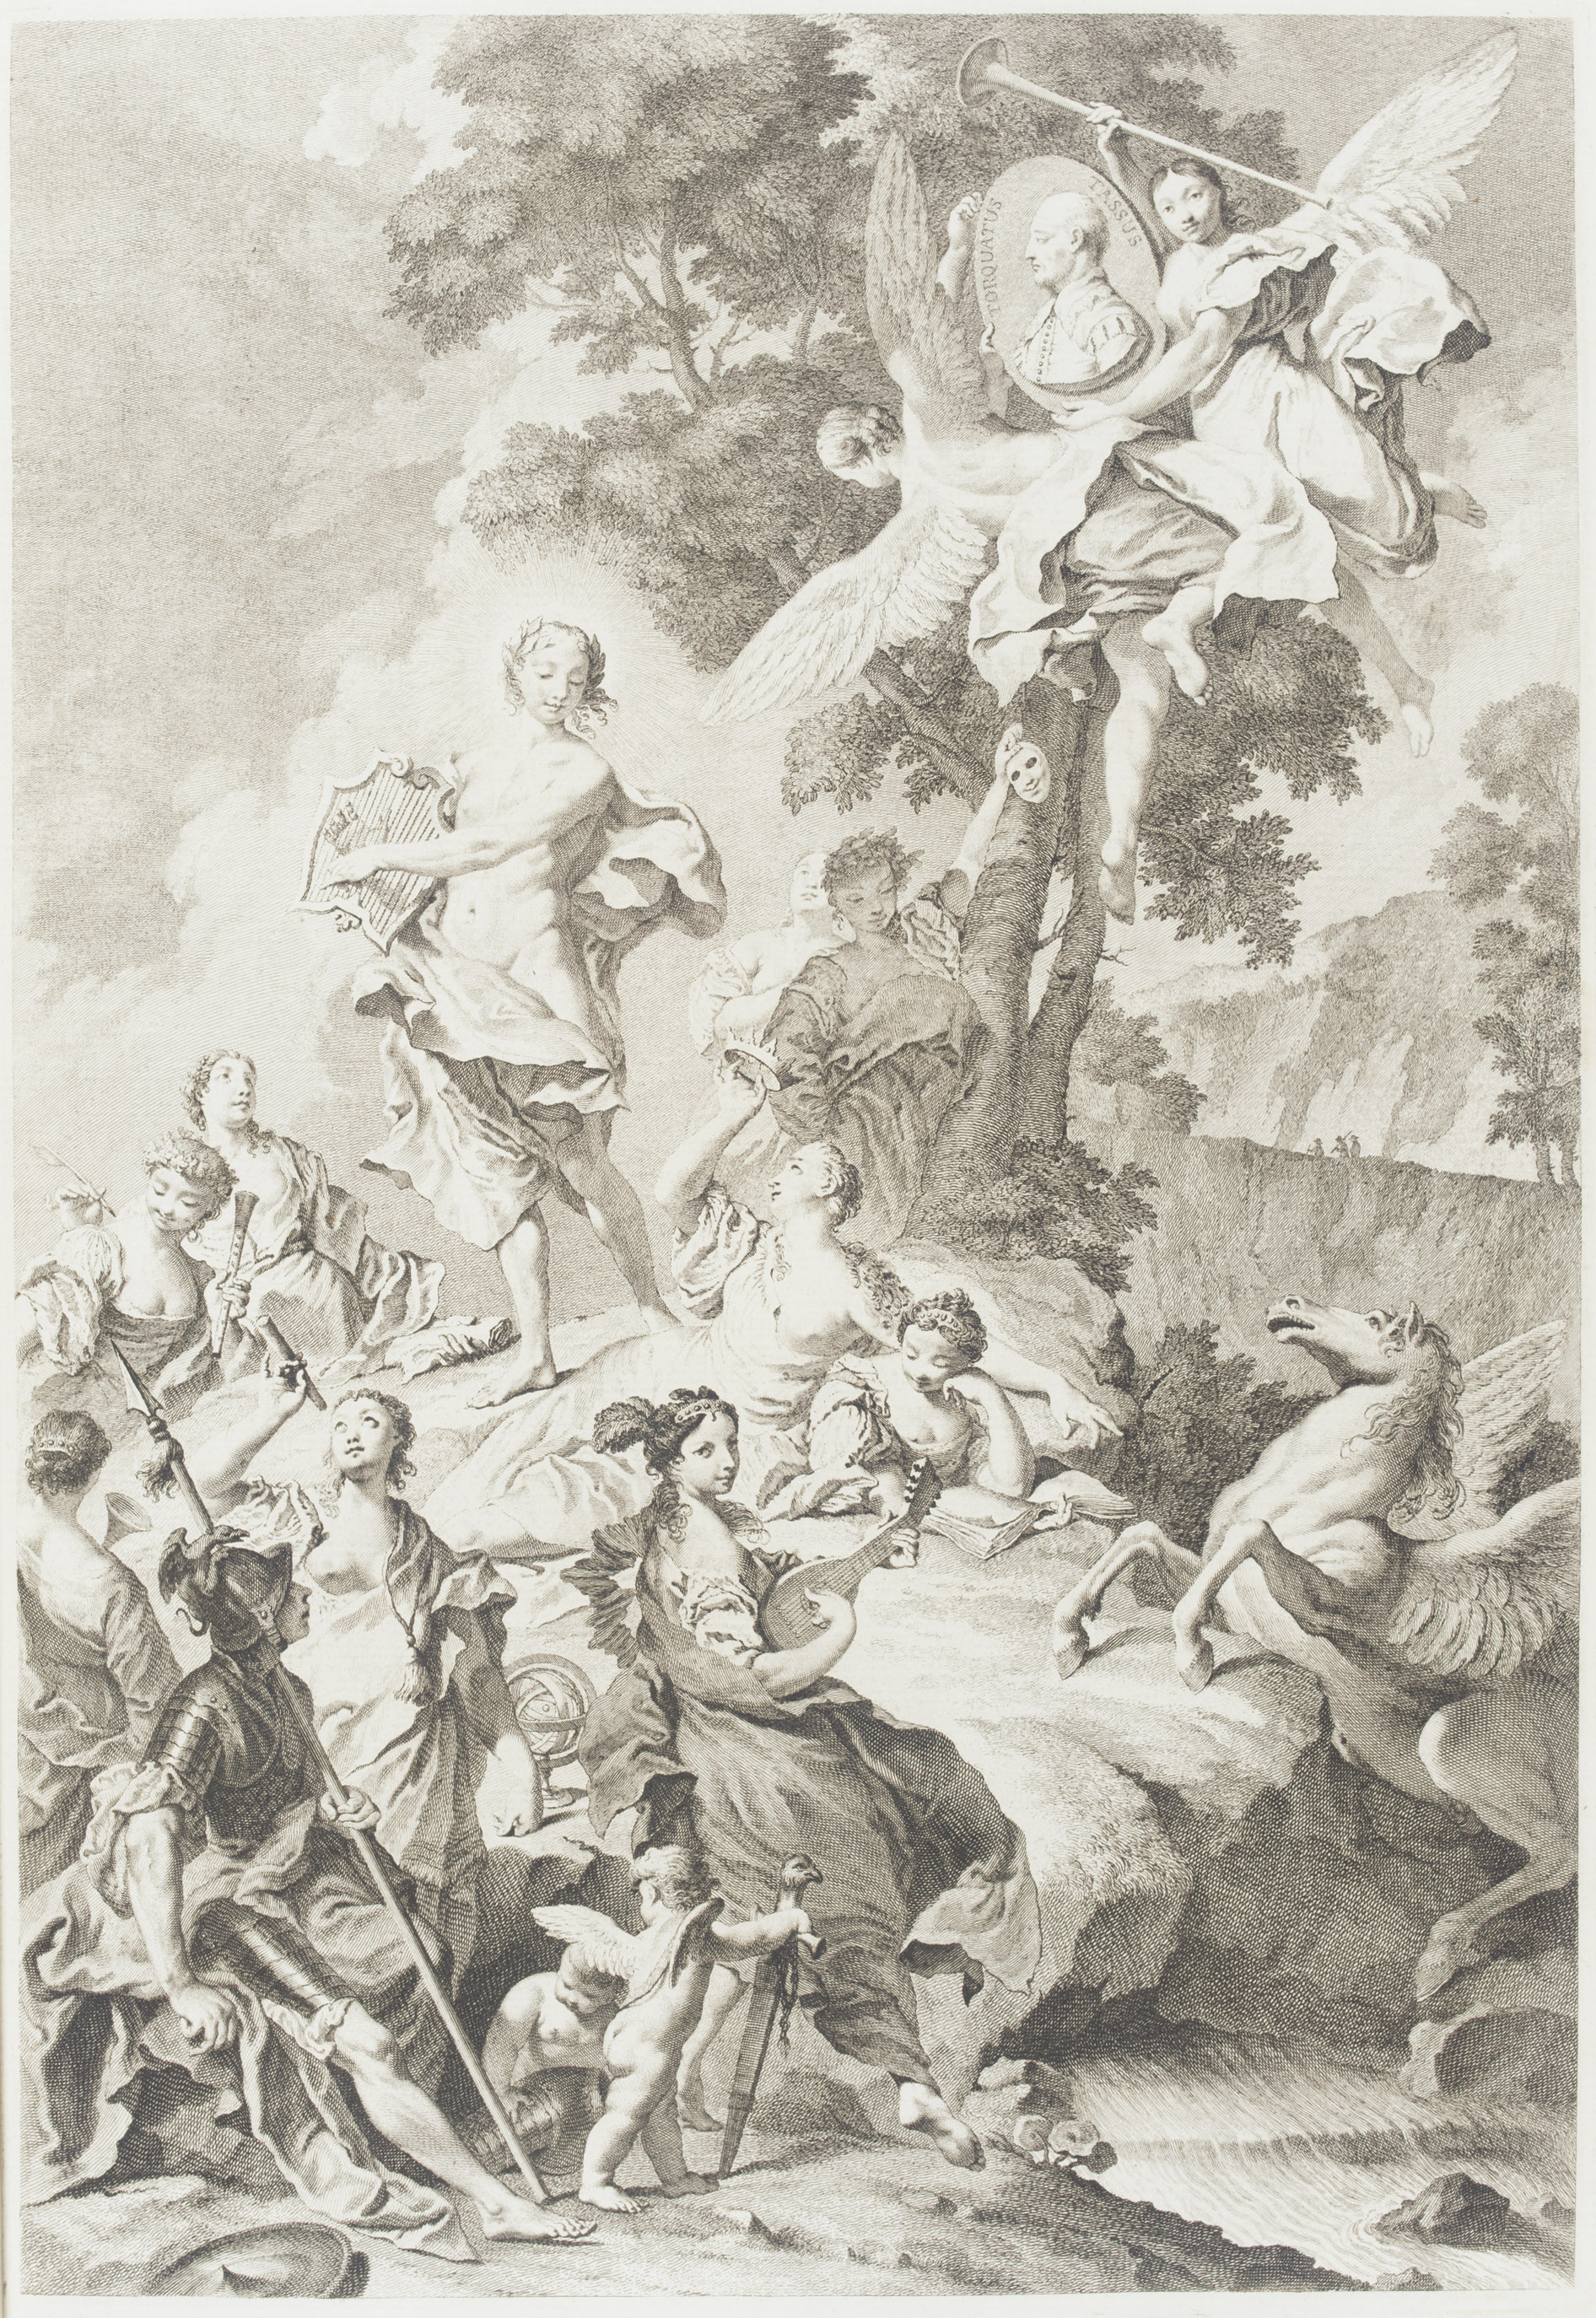 TASSO, Torquato (1544-95). La Gerusalemme Liberata. Venice: Giambattista Albrizzi, 1745. 2° (455 x 307mm). Half-title, engraved allegorical frontispiece, title printed in red and black, portrait of Maria Teresa, and 21 plates by Giambattista Piazzetta within one of two different styles of engraved border, engraved vignettes, one full-page. (Minor soiling on the half-title, light offsetting from a few plates). Contemporary mottled calf gilt (expertly rebacked preserving much of the original spine).